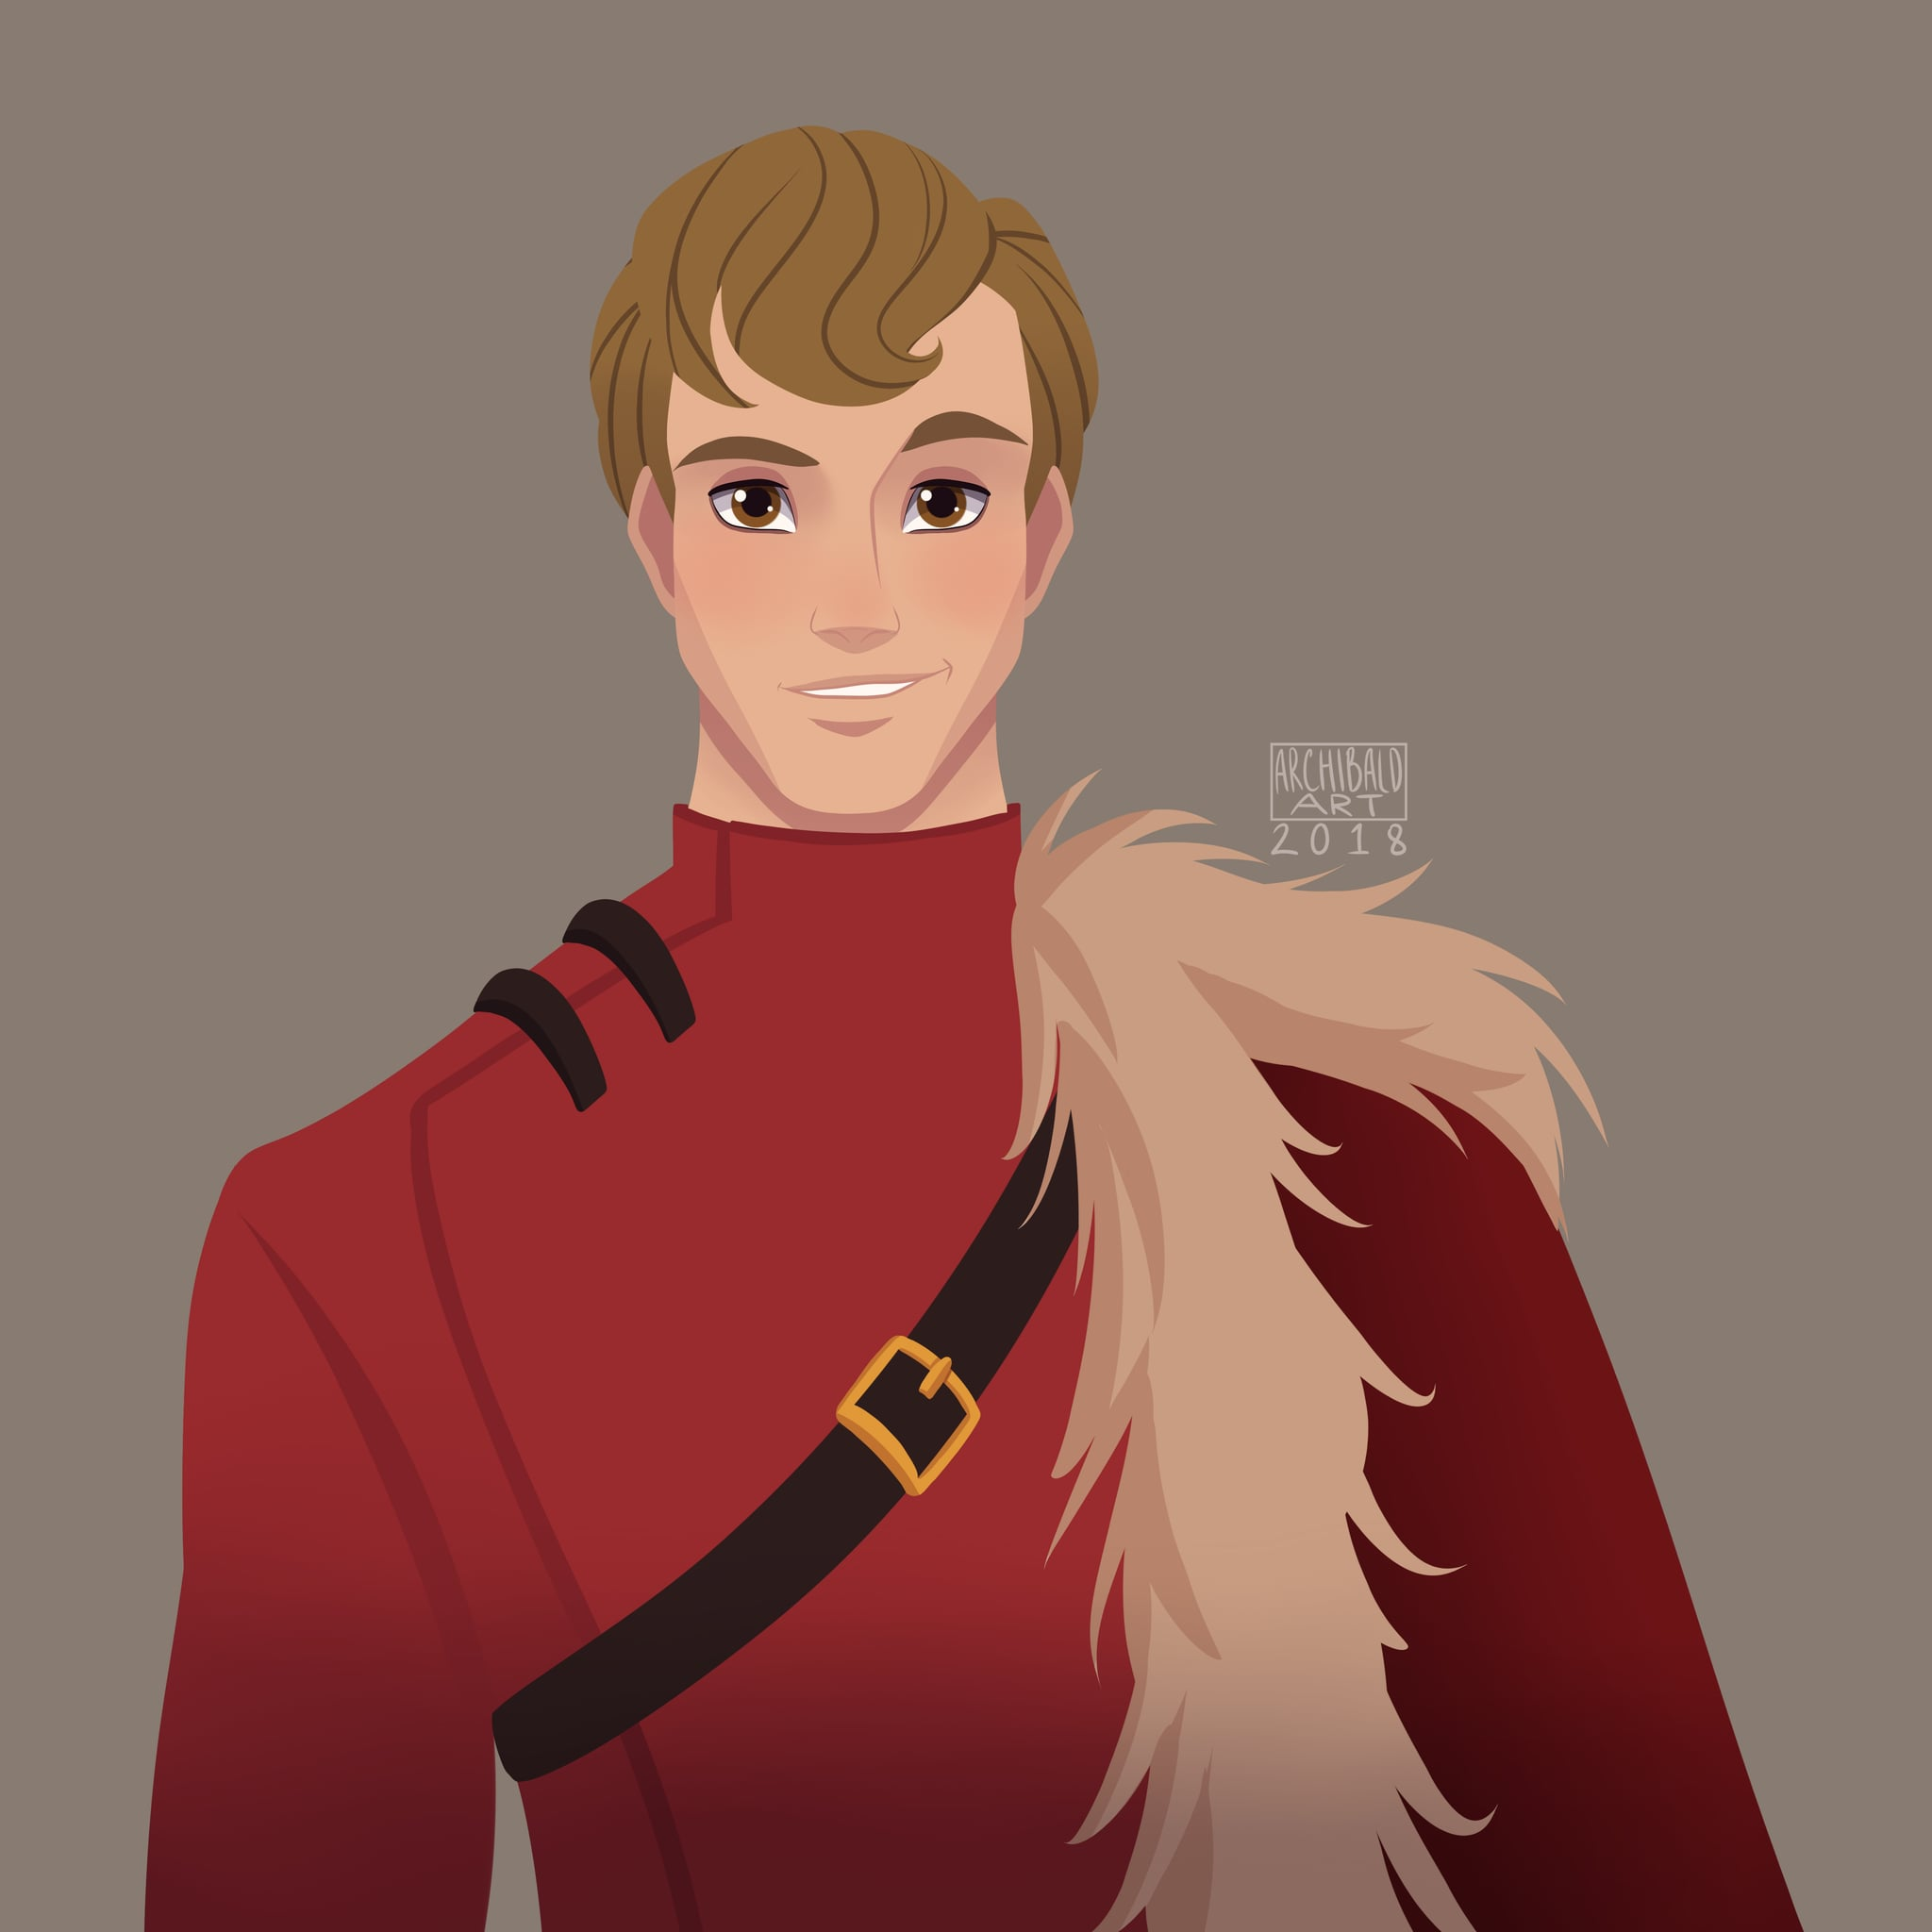 Disney Princesses Sorted Into Hogwarts Houses Artwork Popsugar Smart Living The new head of durmstrang following her demise was harfang munter, who focused teaching on duels and the harry potter lexicon is an unofficial harry potter fansite. disney princesses sorted into hogwarts